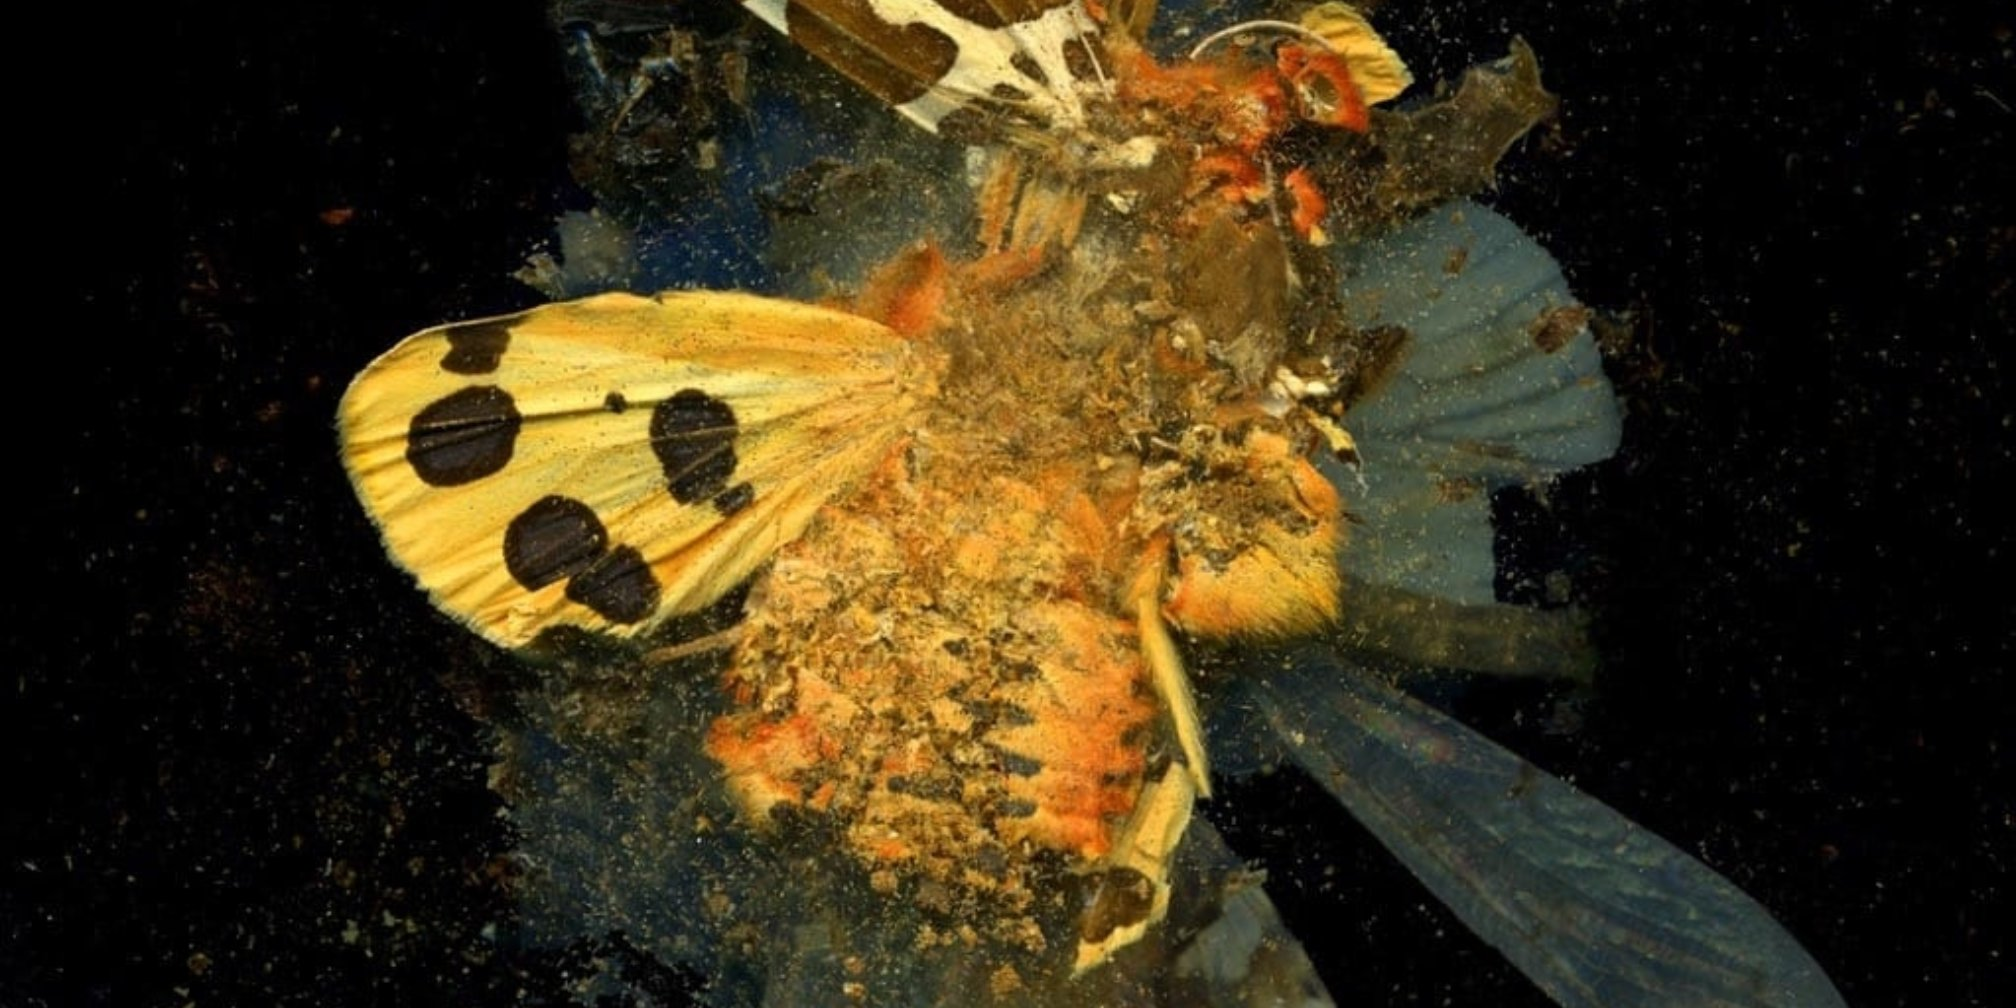 Mat Collishaw, Insecticide 24, 2008